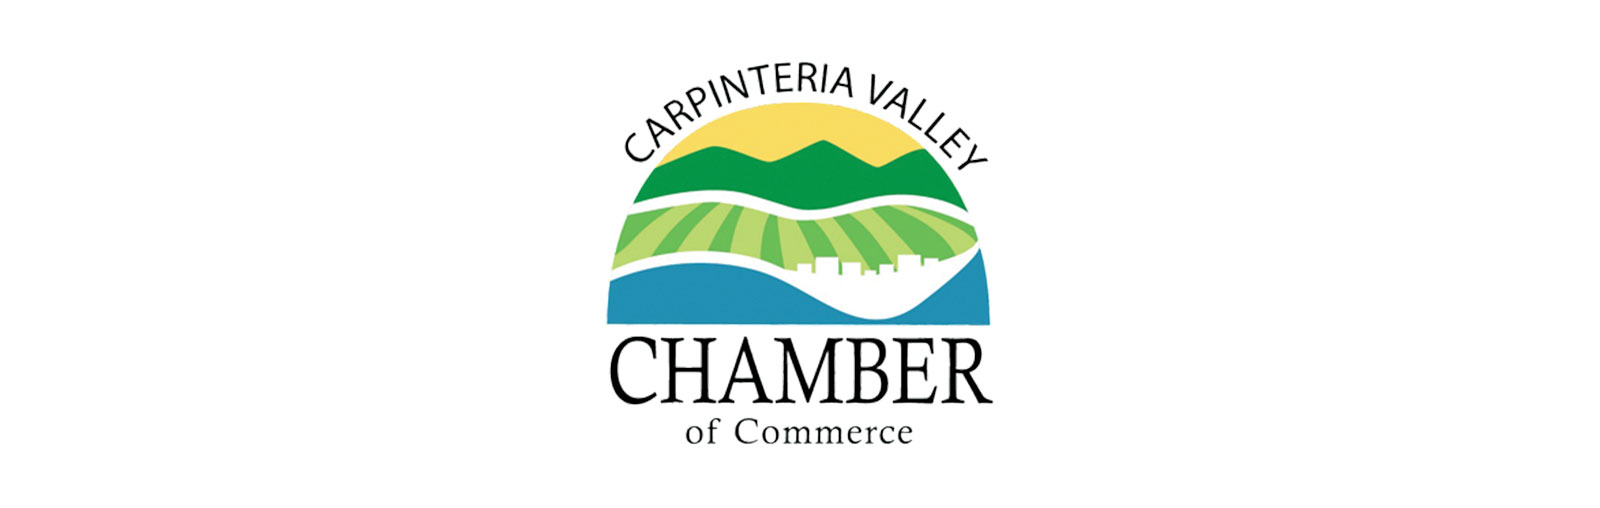 partners-logo-Carpinteria-Valley-Chamber-of-Commerce